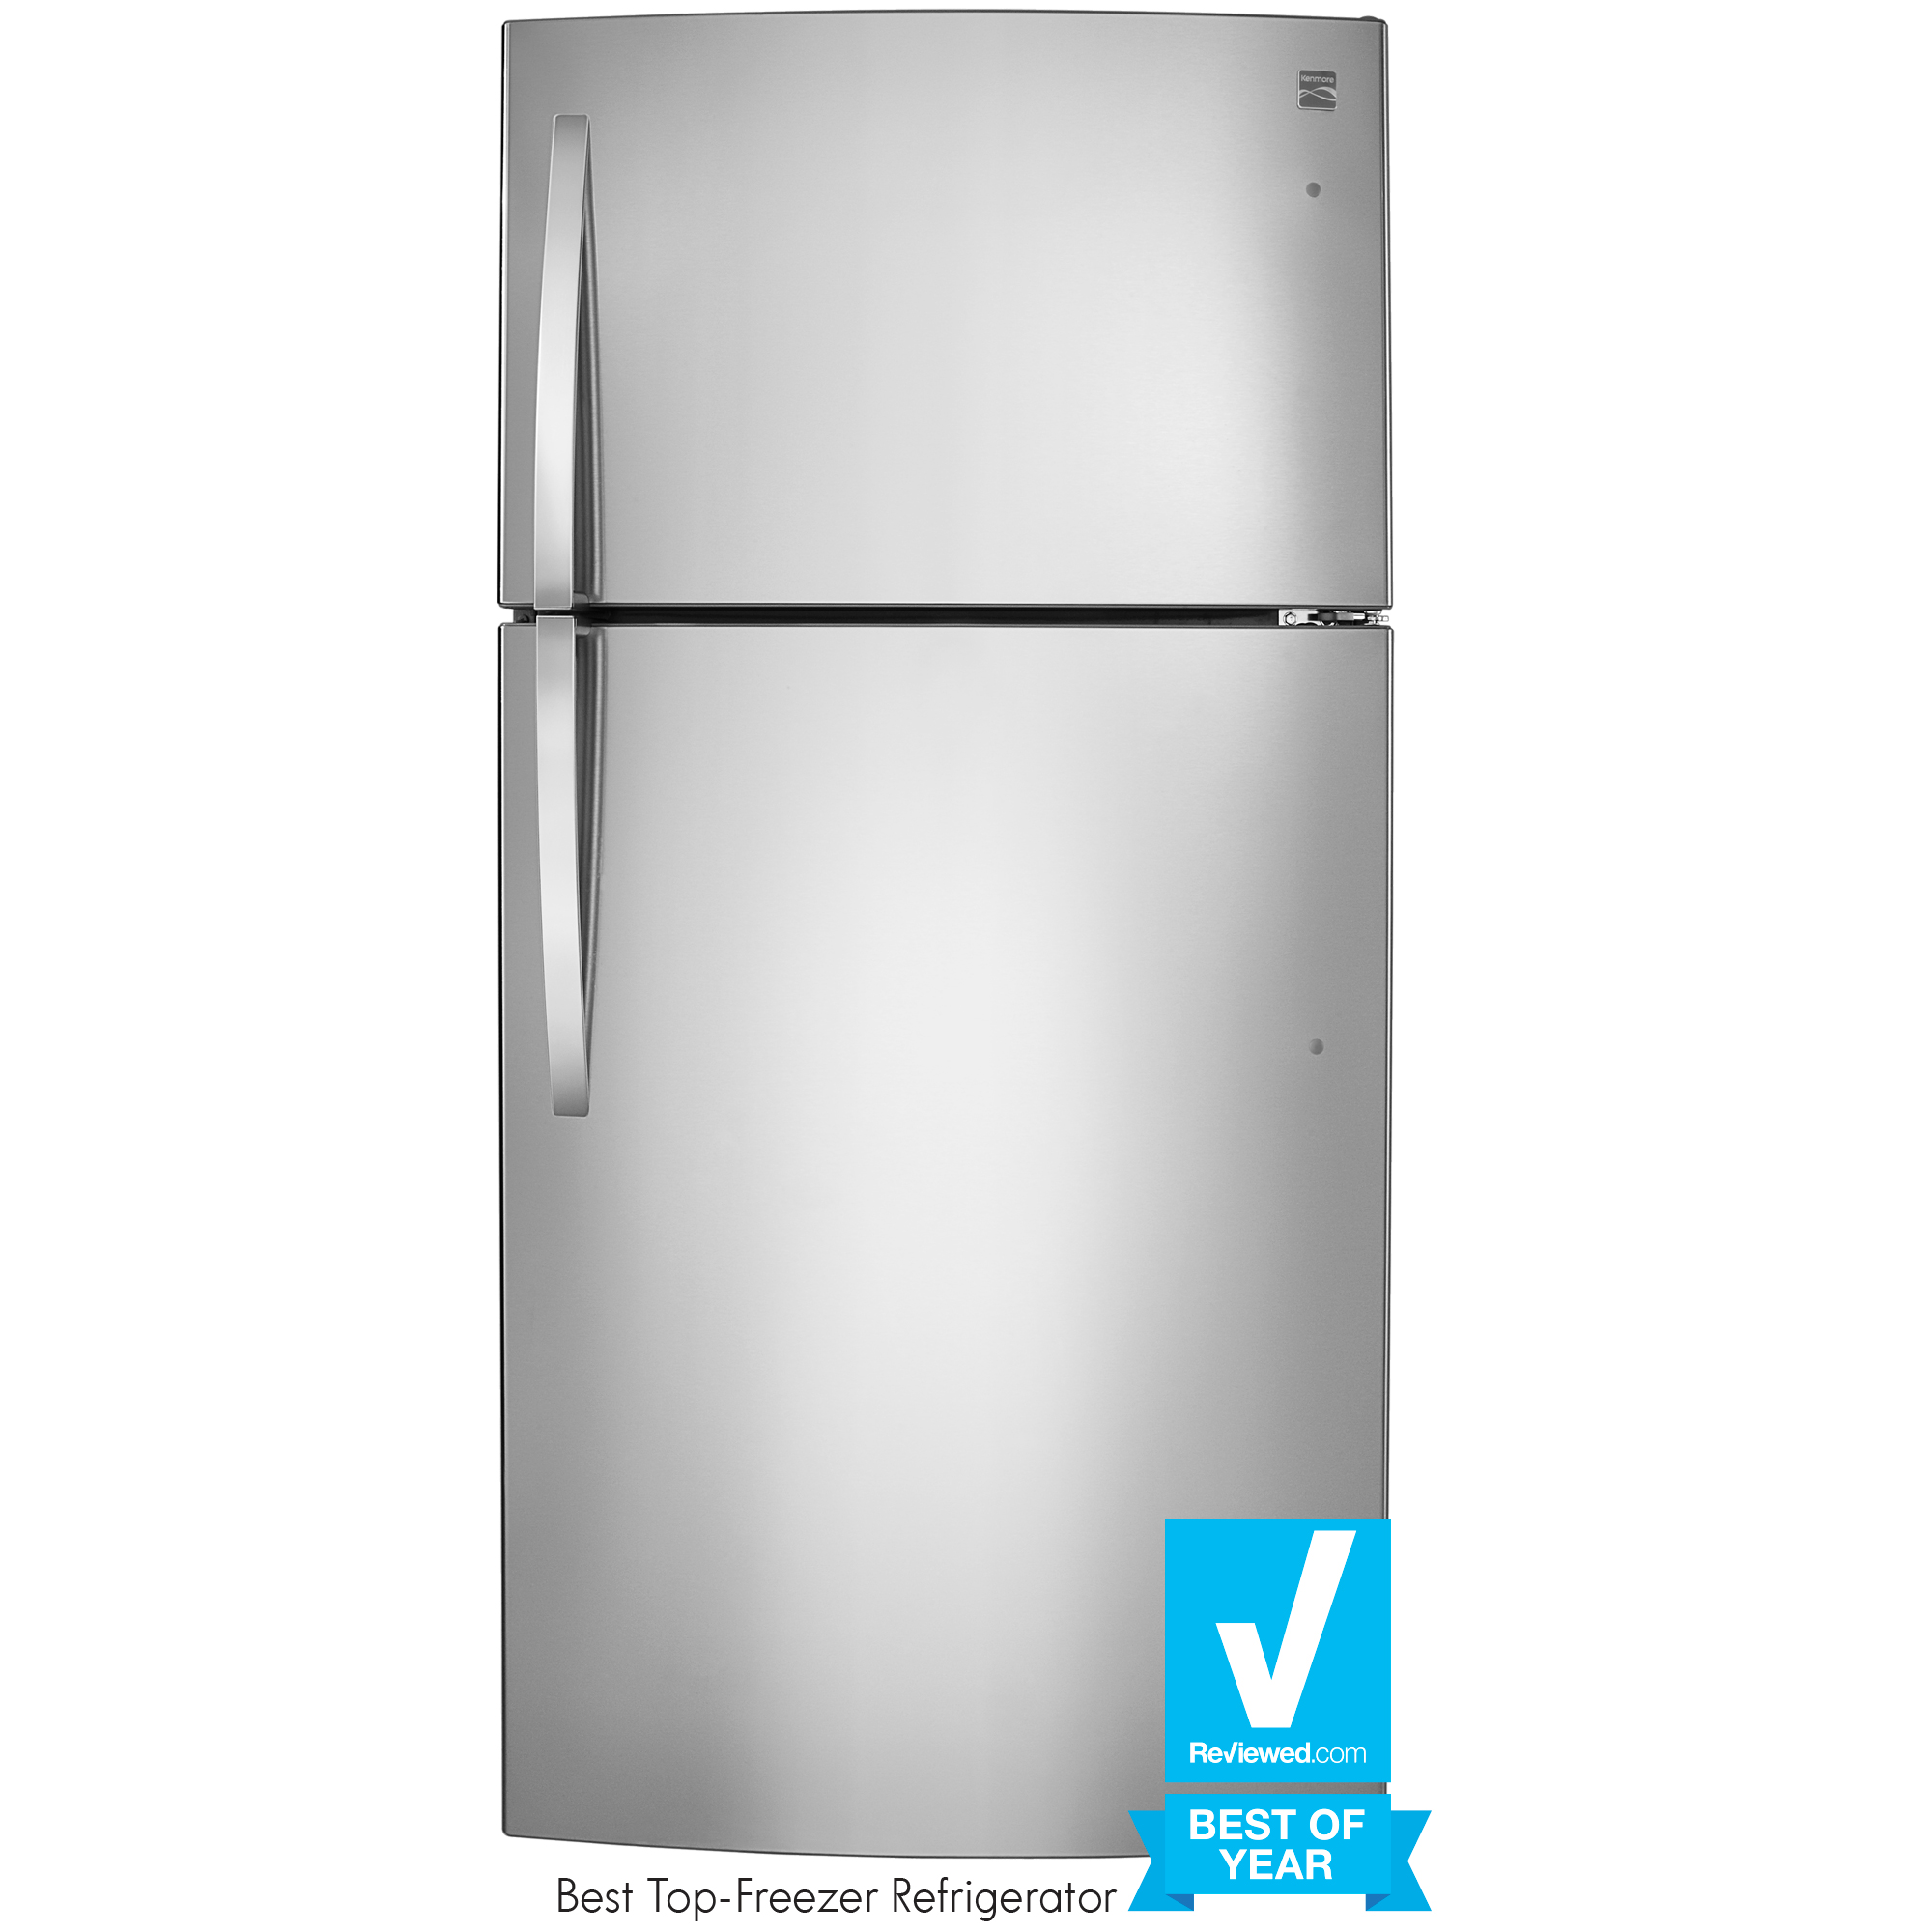 Kenmore 79433 23.8 cu. ft. Top-Freezer Refrigerator - Stainless Steel